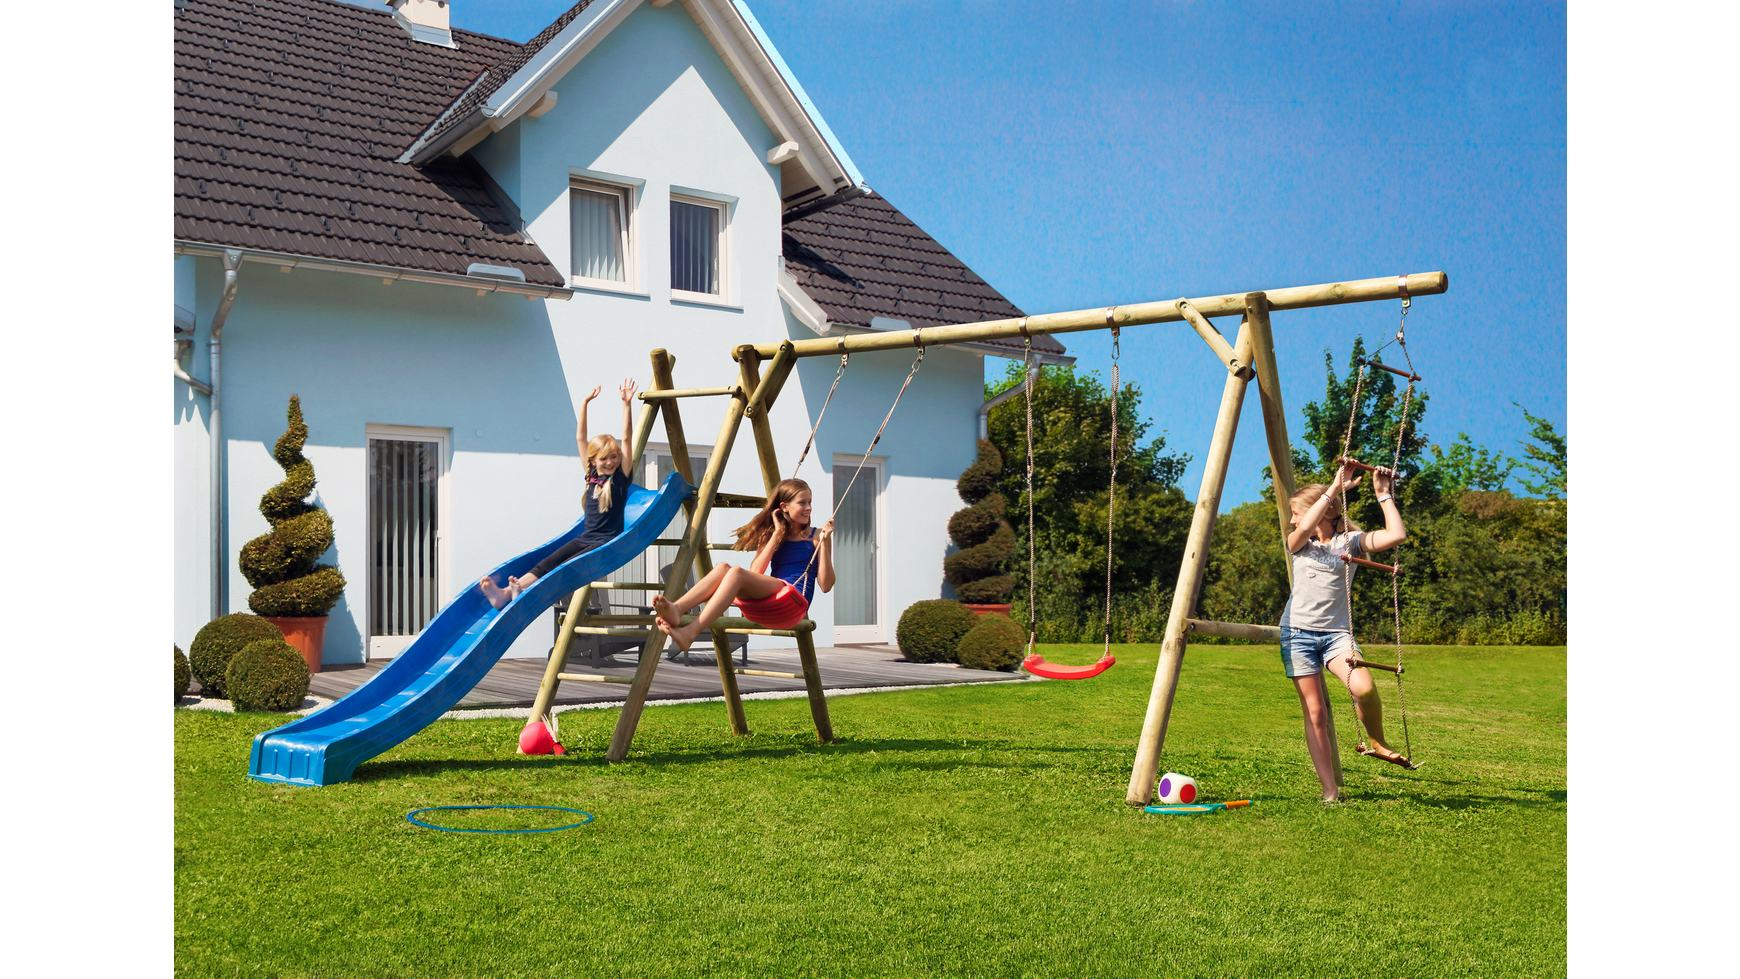 Mr gardener kinderspielanlage arno b425xt190xh220 cm for Pool hagebaumarkt